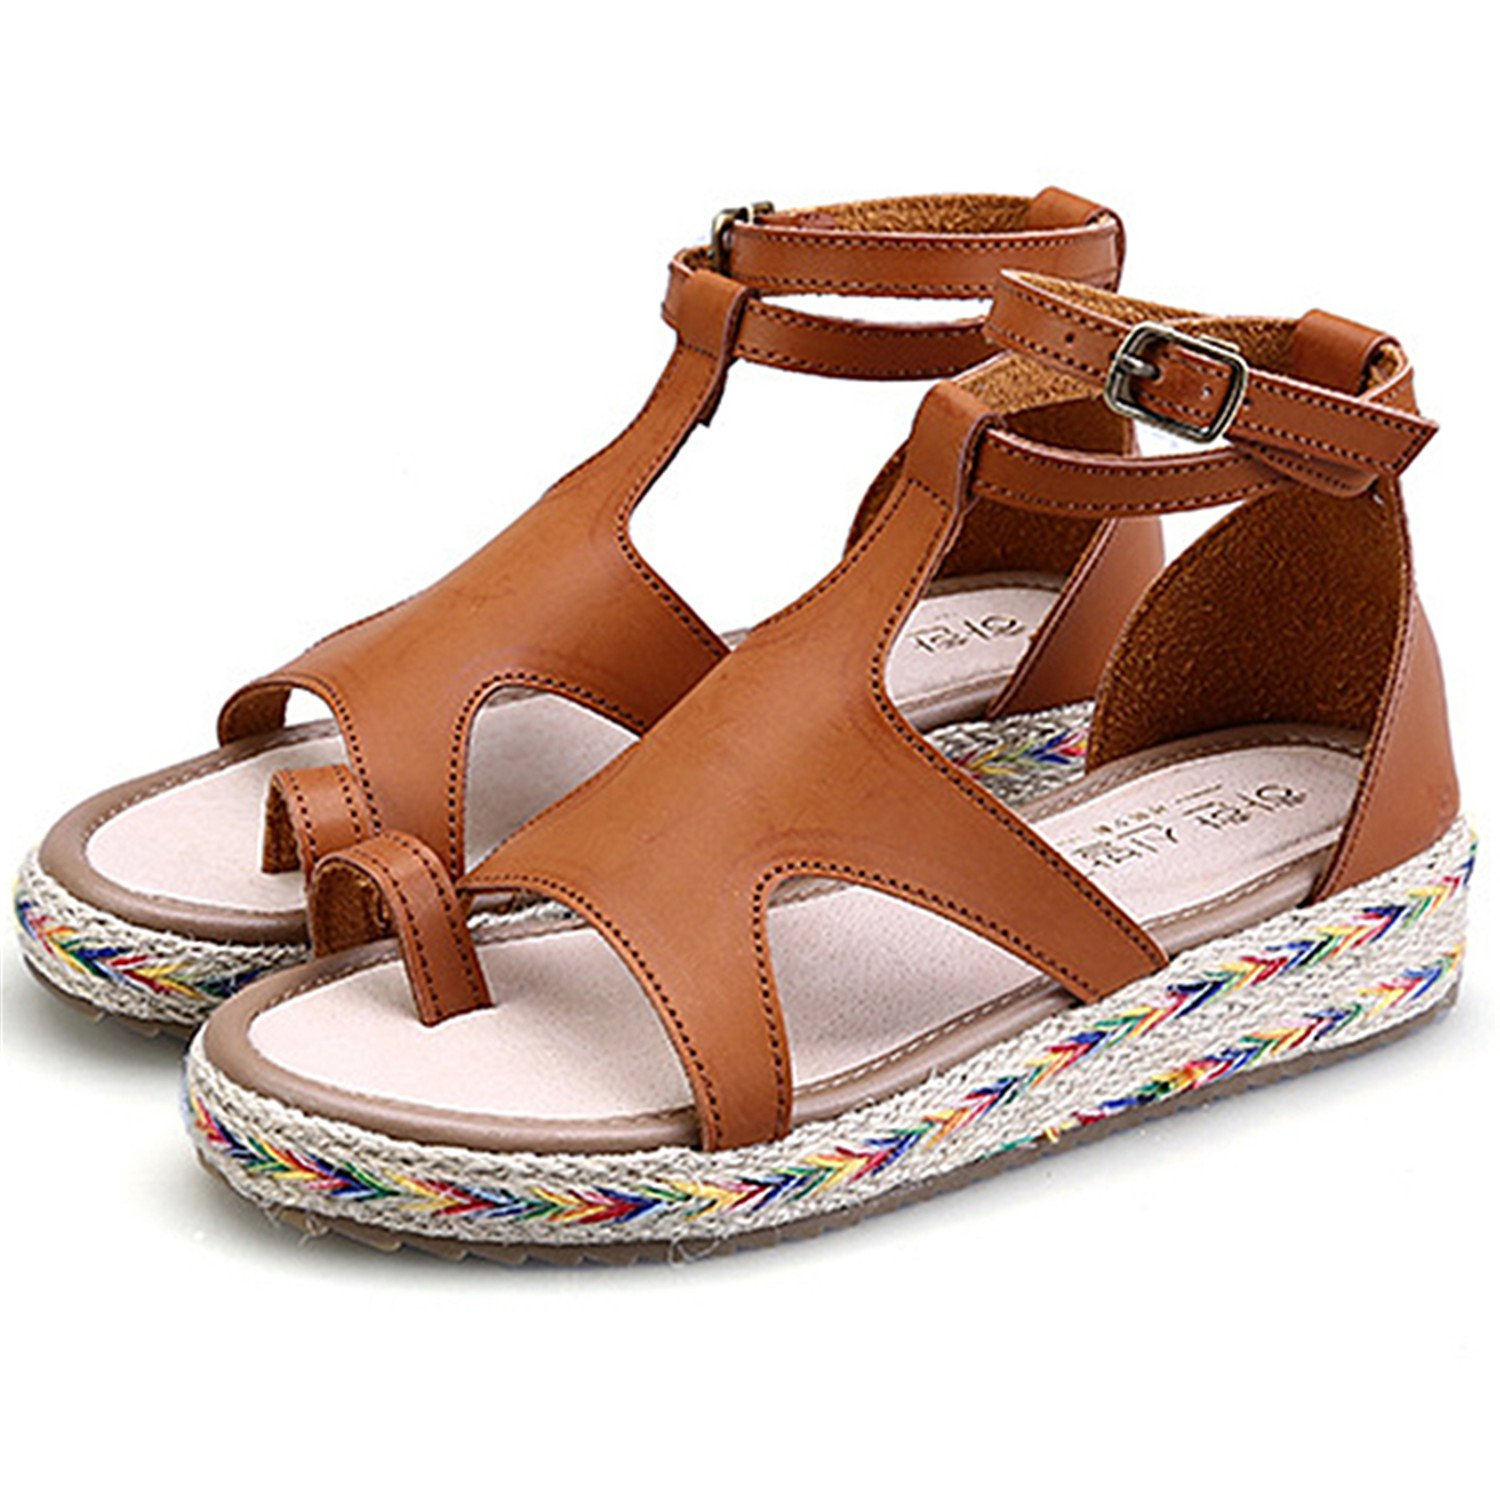 9822f25e22f1 HEART LOVE Women Sandals Fashion Straw Shoes Woman Summer Wedges Sandals  Ankle Strap Casual Ladies Flat Sandals - Casual Women s Shoes